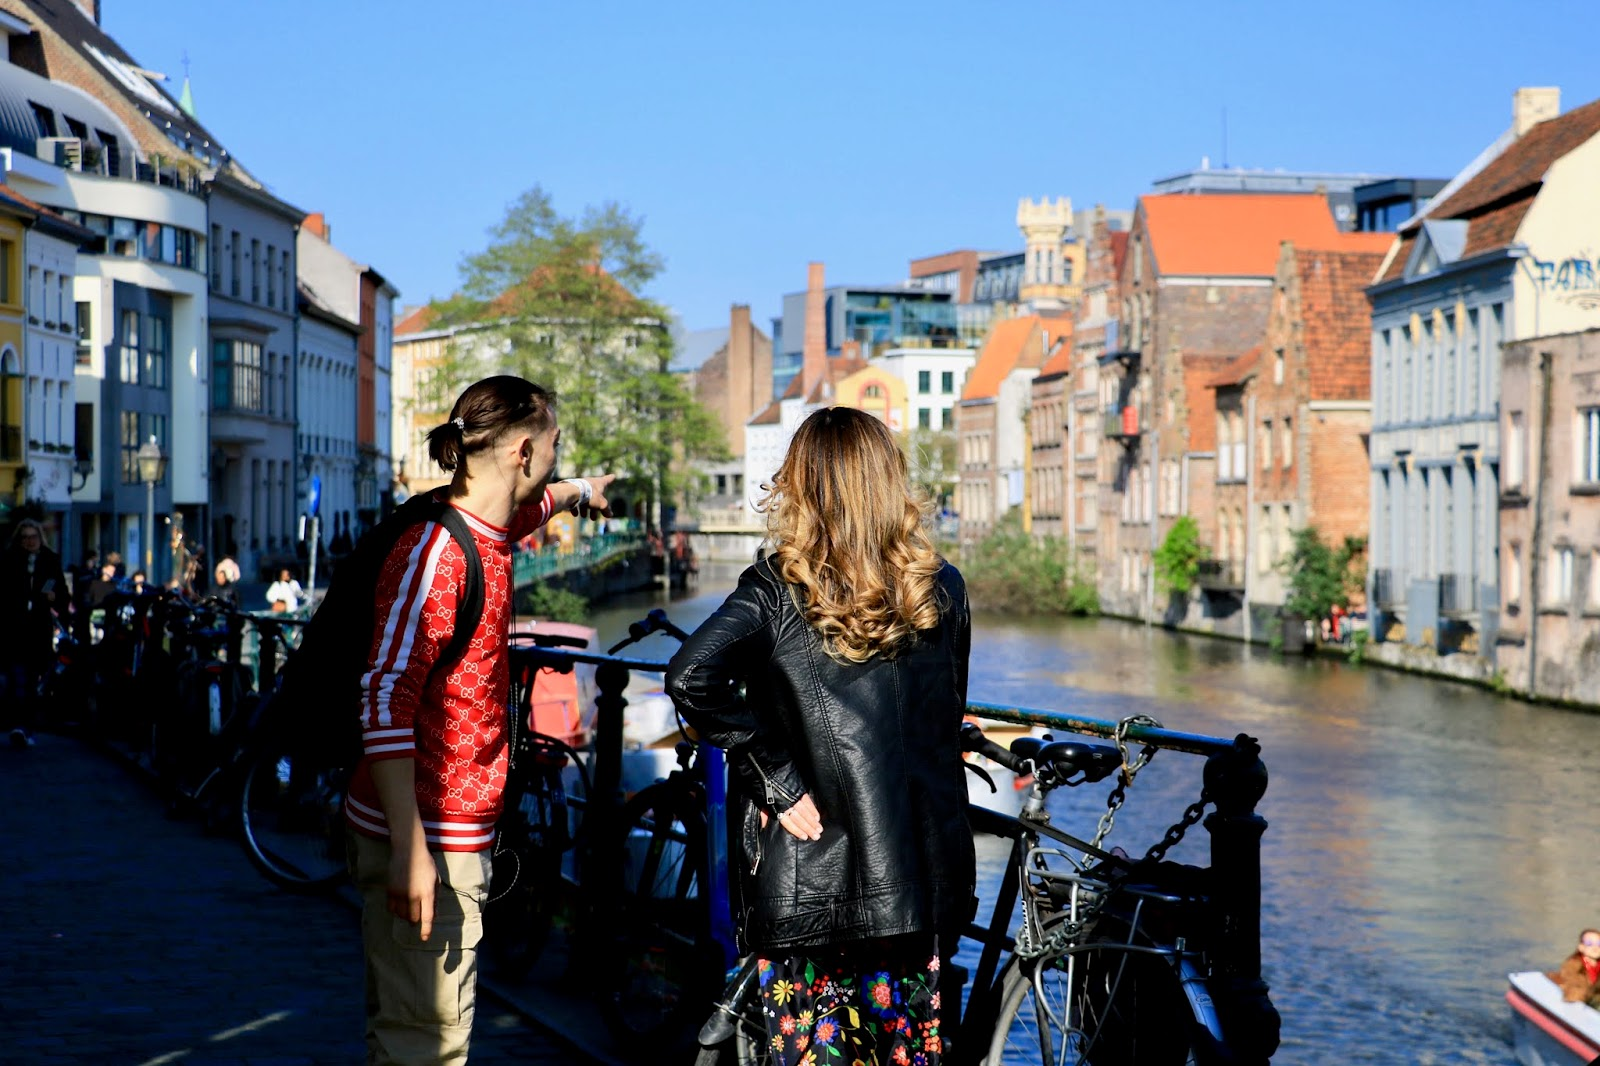 Travel blogger Kathleen Harper's guide for what to do in Ghent, Belgium this spring